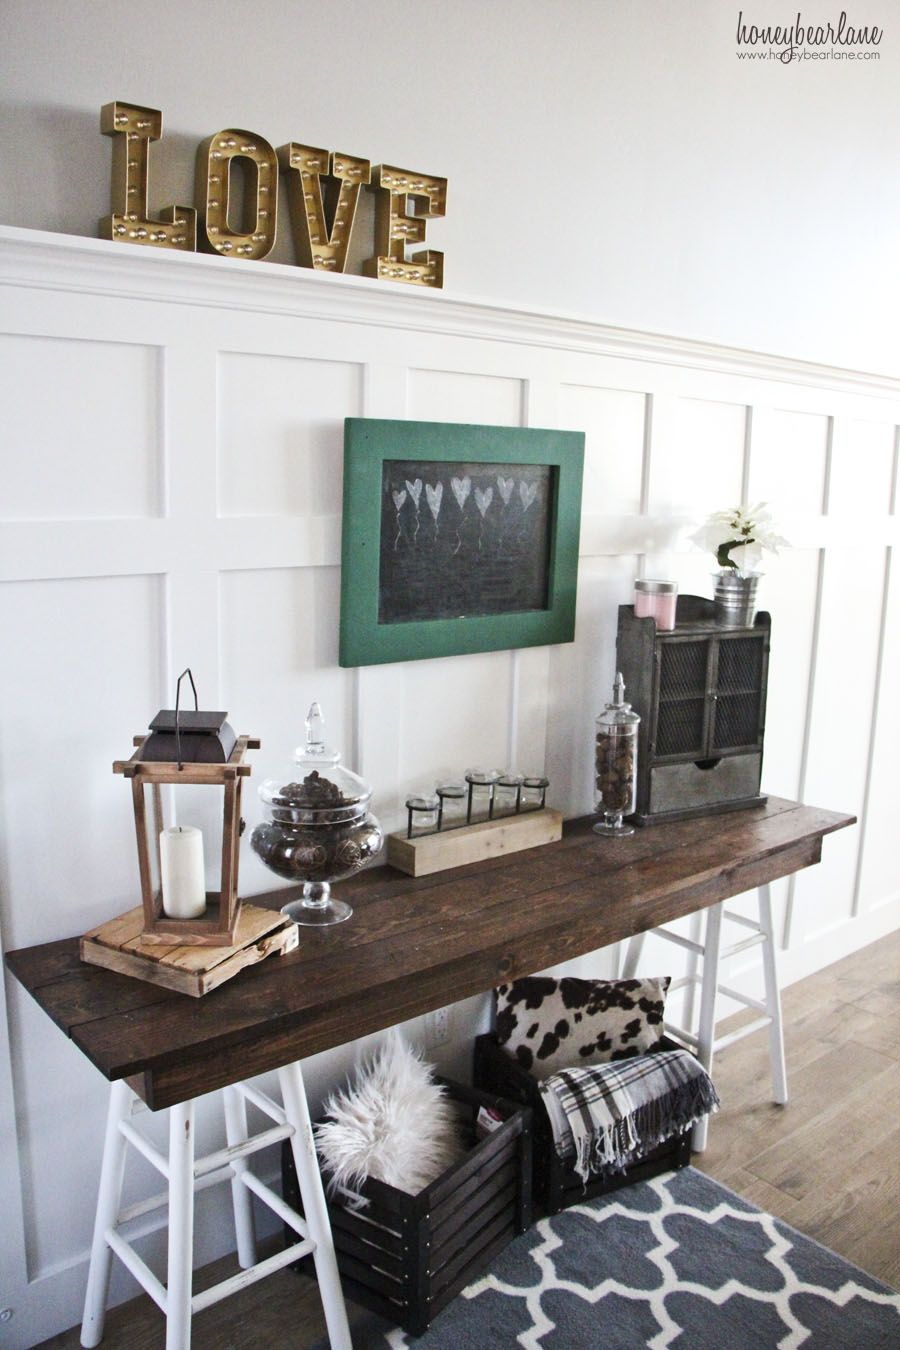 27 Welcoming Rustic Entryway Decorating Ideas That